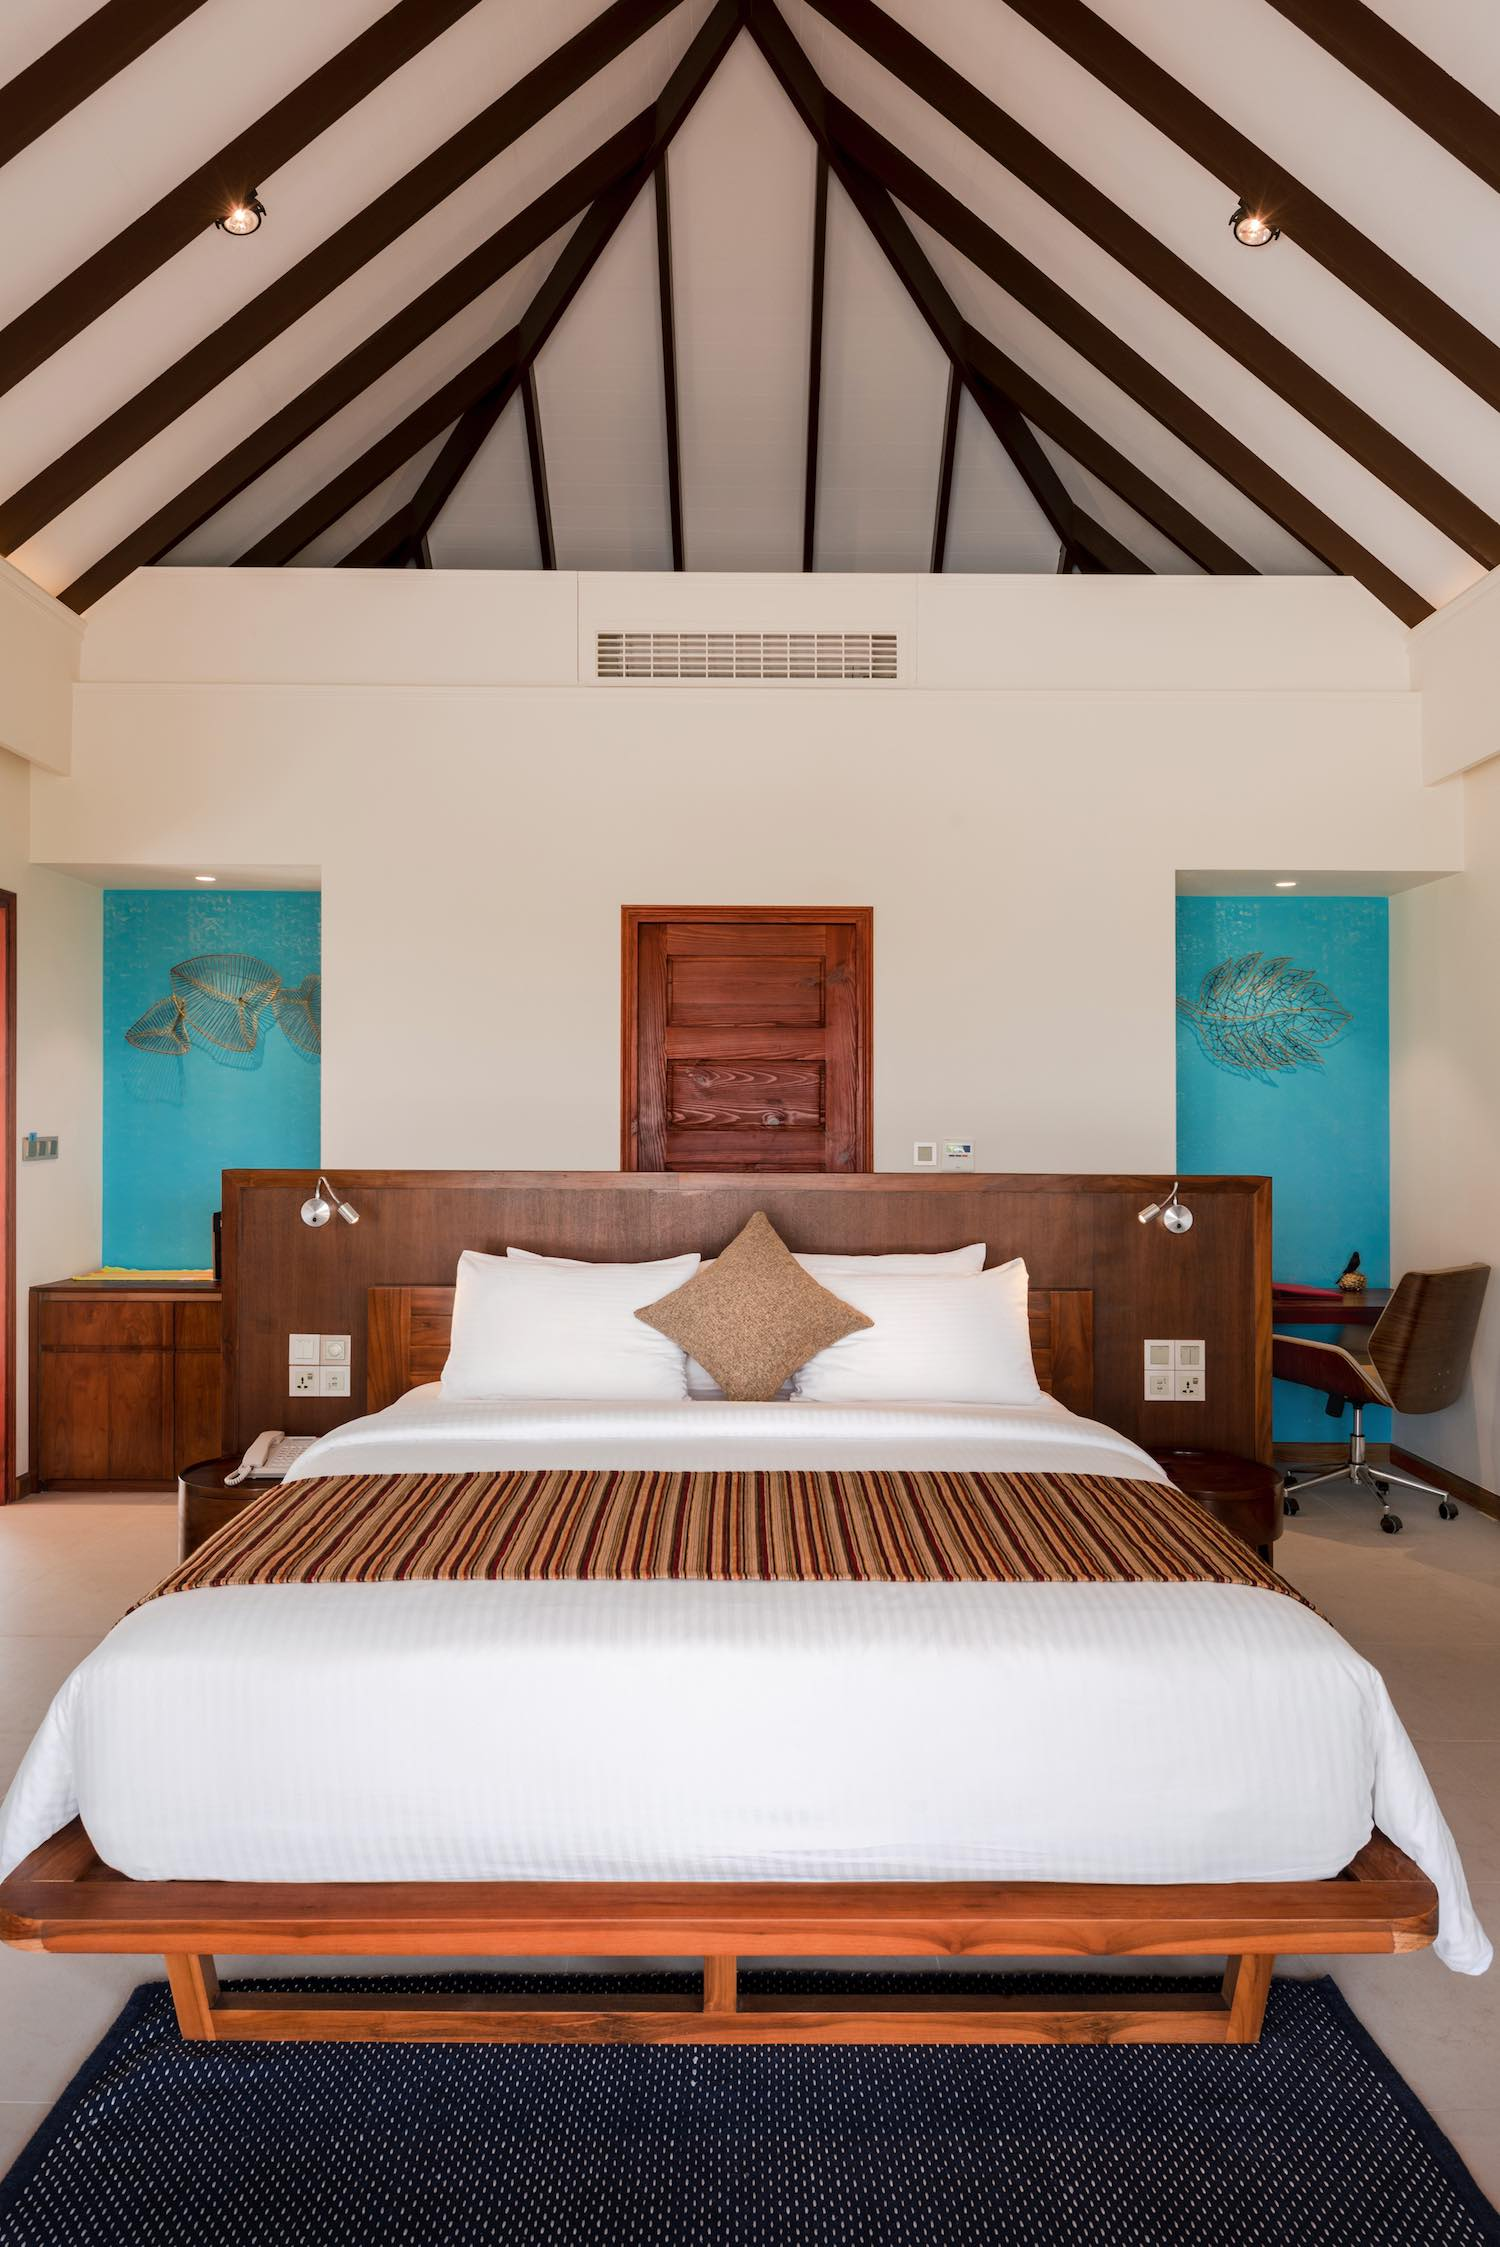 maldives-varu-by-atmosphere-beach-villa-with-pool-bedroom-portrait-holiday-honeymoon-vacation-invite-to-paradise.jpg